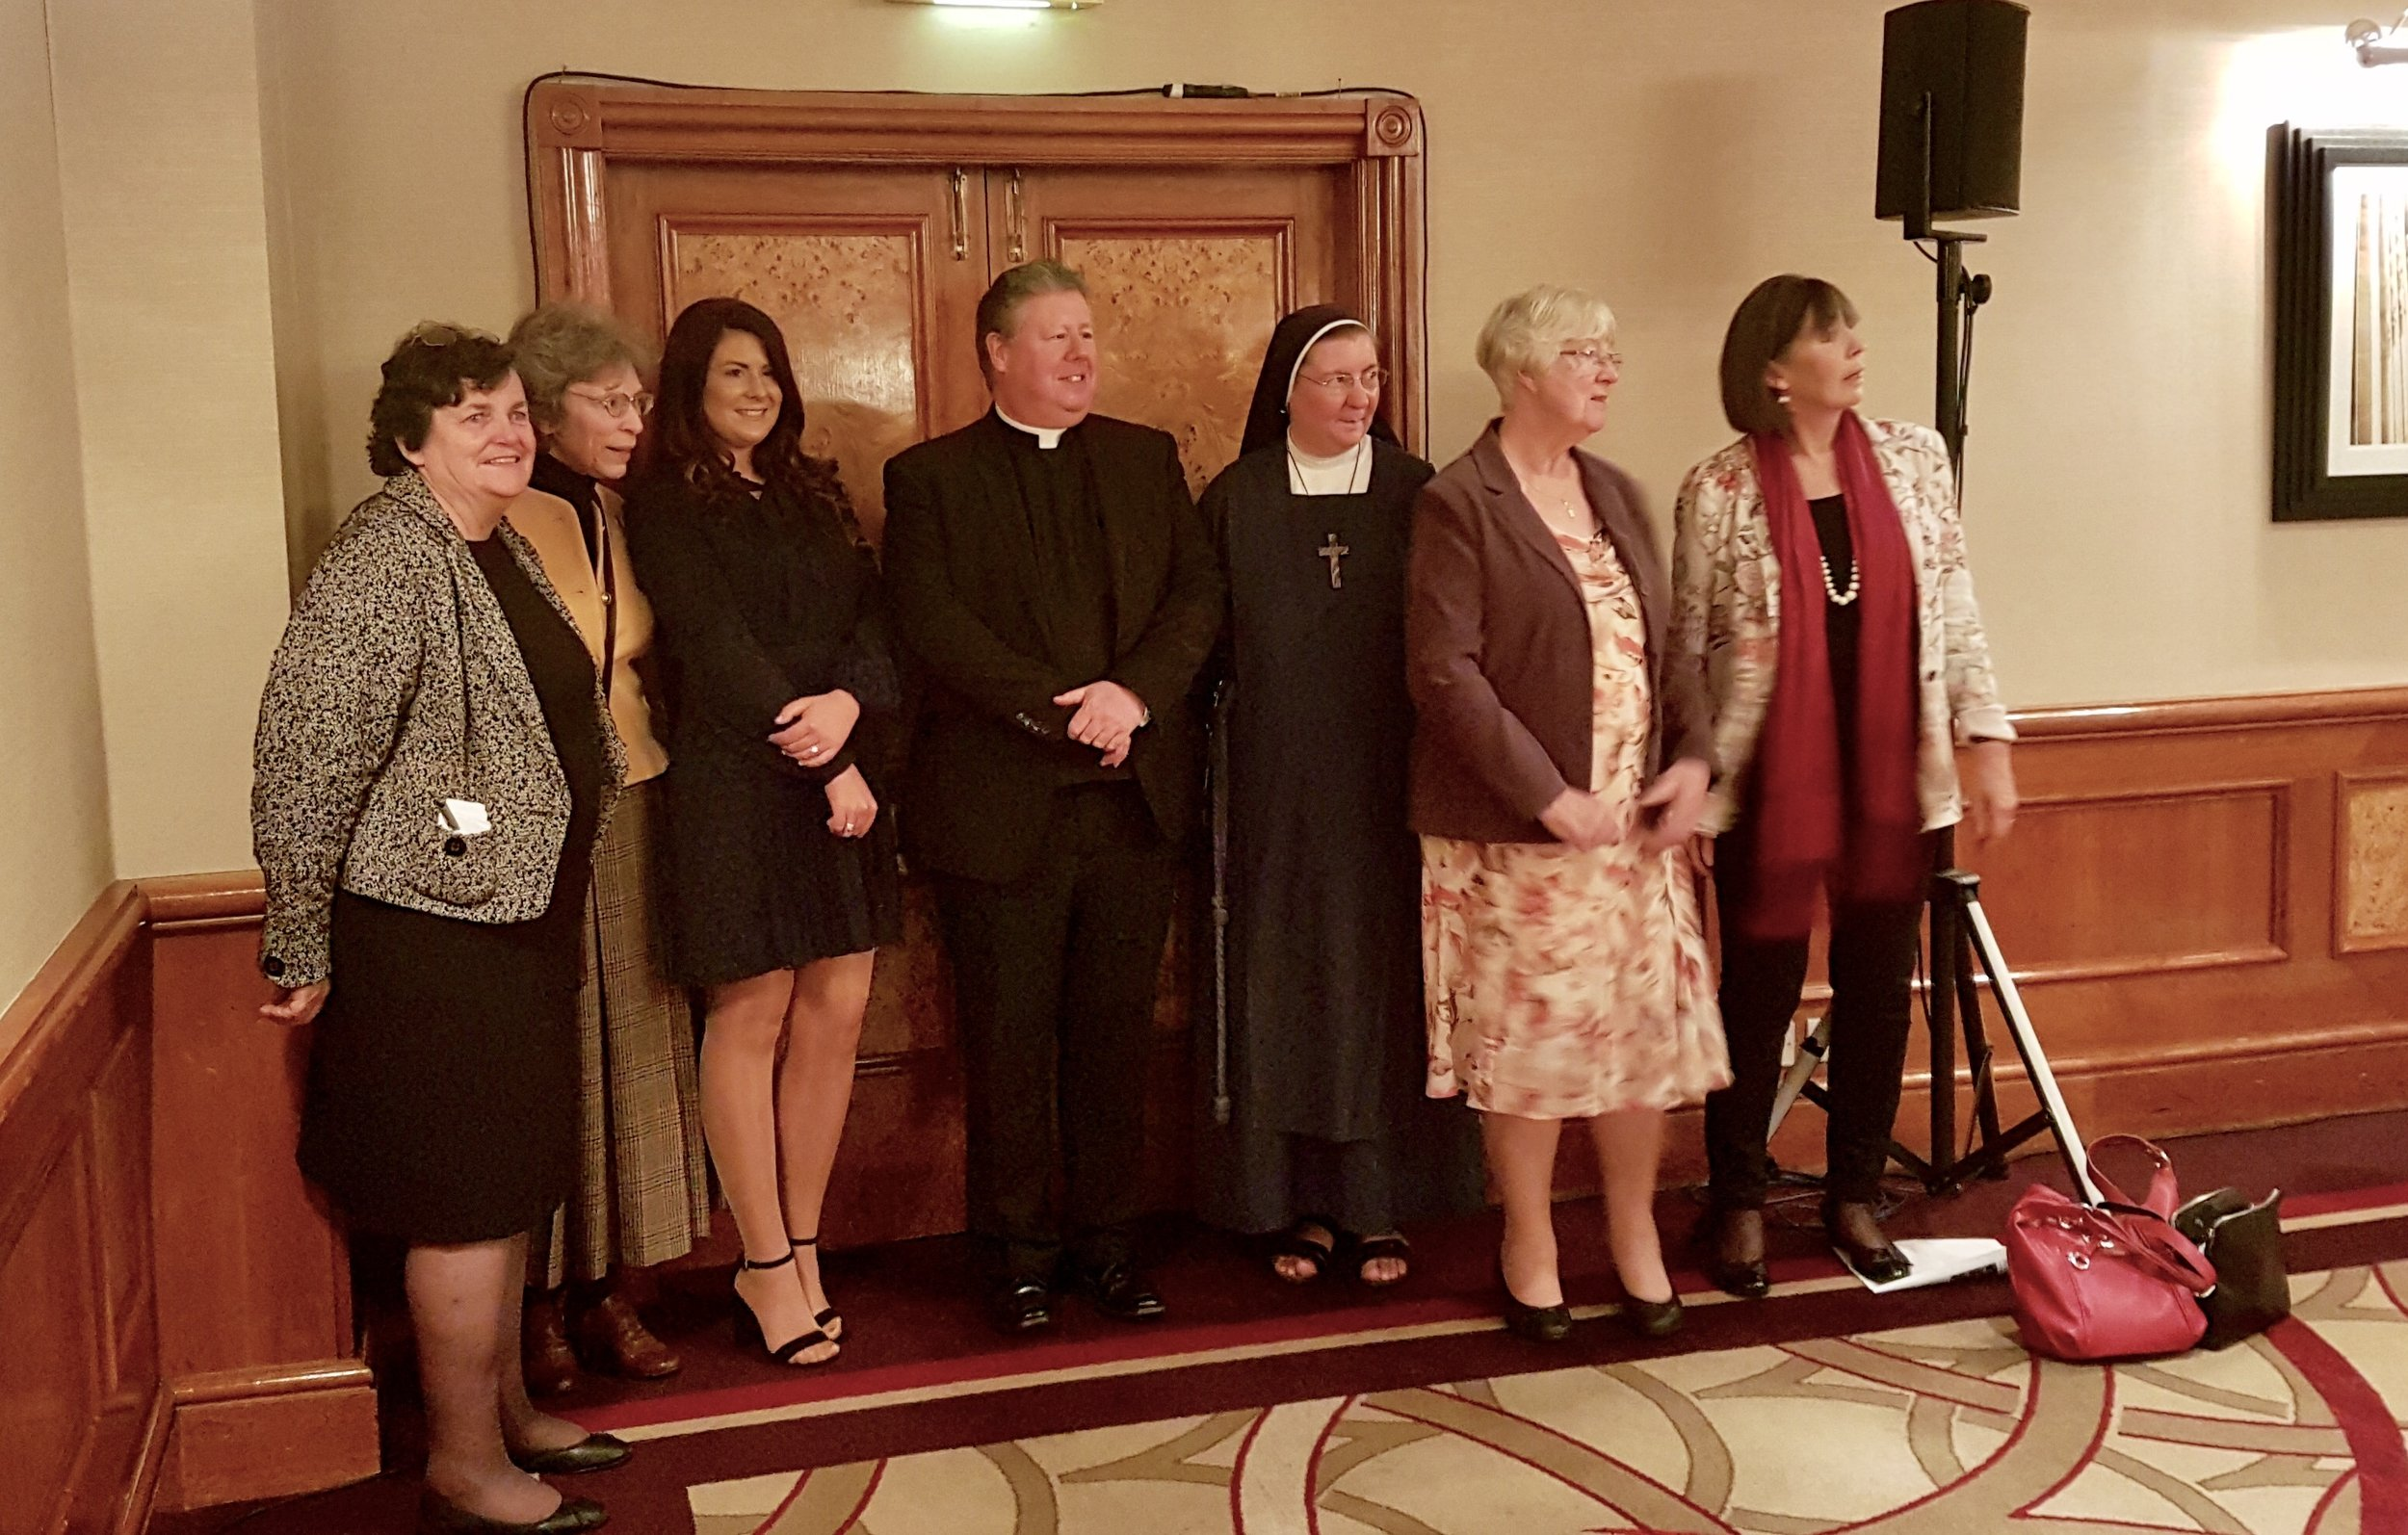 L-R: Patti Fordyce, Chairman; Dr Caroline Farey, Catherine MacMillan, Catholic Women of the Year; Father Dominic Allain, Grief to Grace; Sister Jane Louise, Dr Olive Duddy, Catholic Women of the Year; Clare Asquith, Keynote Speaker.